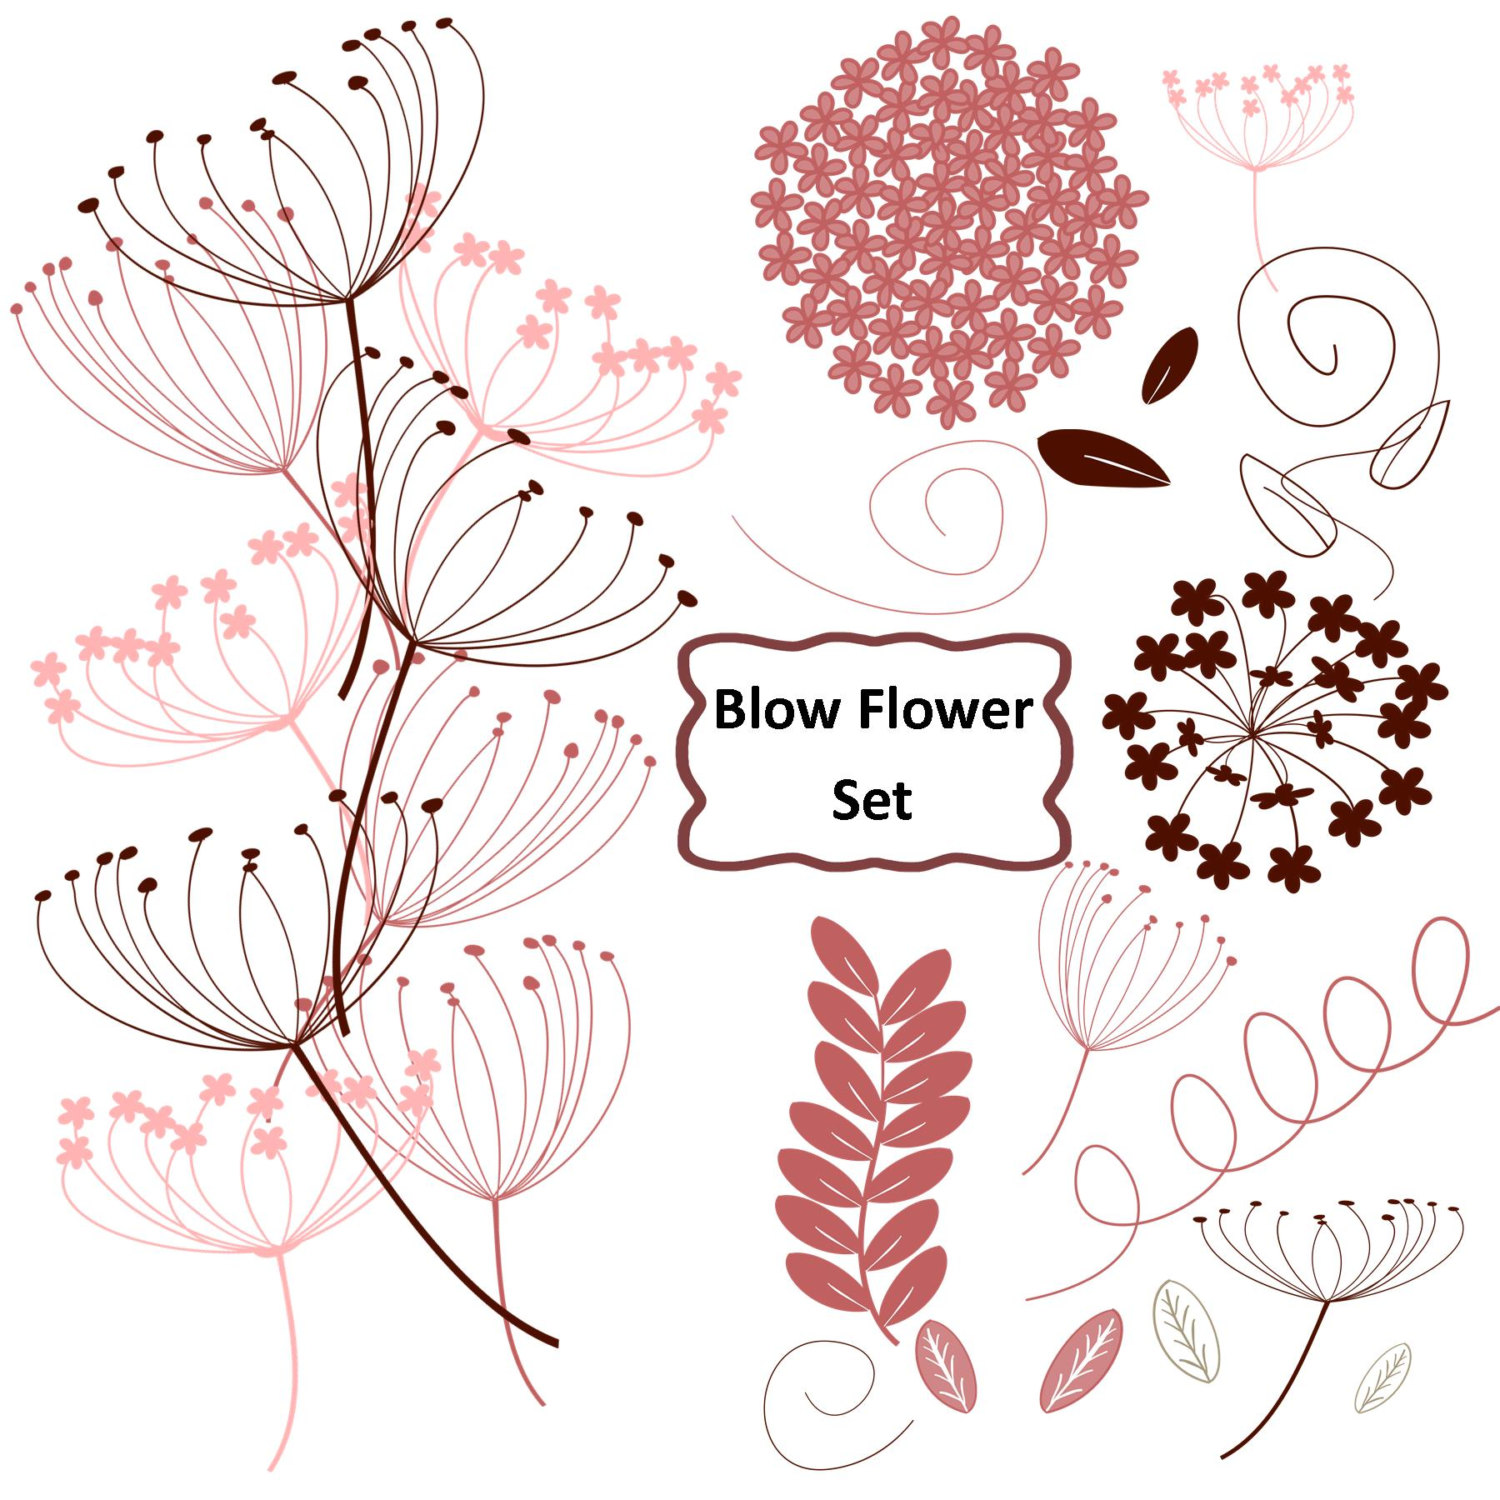 Peach Flower clipart #4, Download drawings